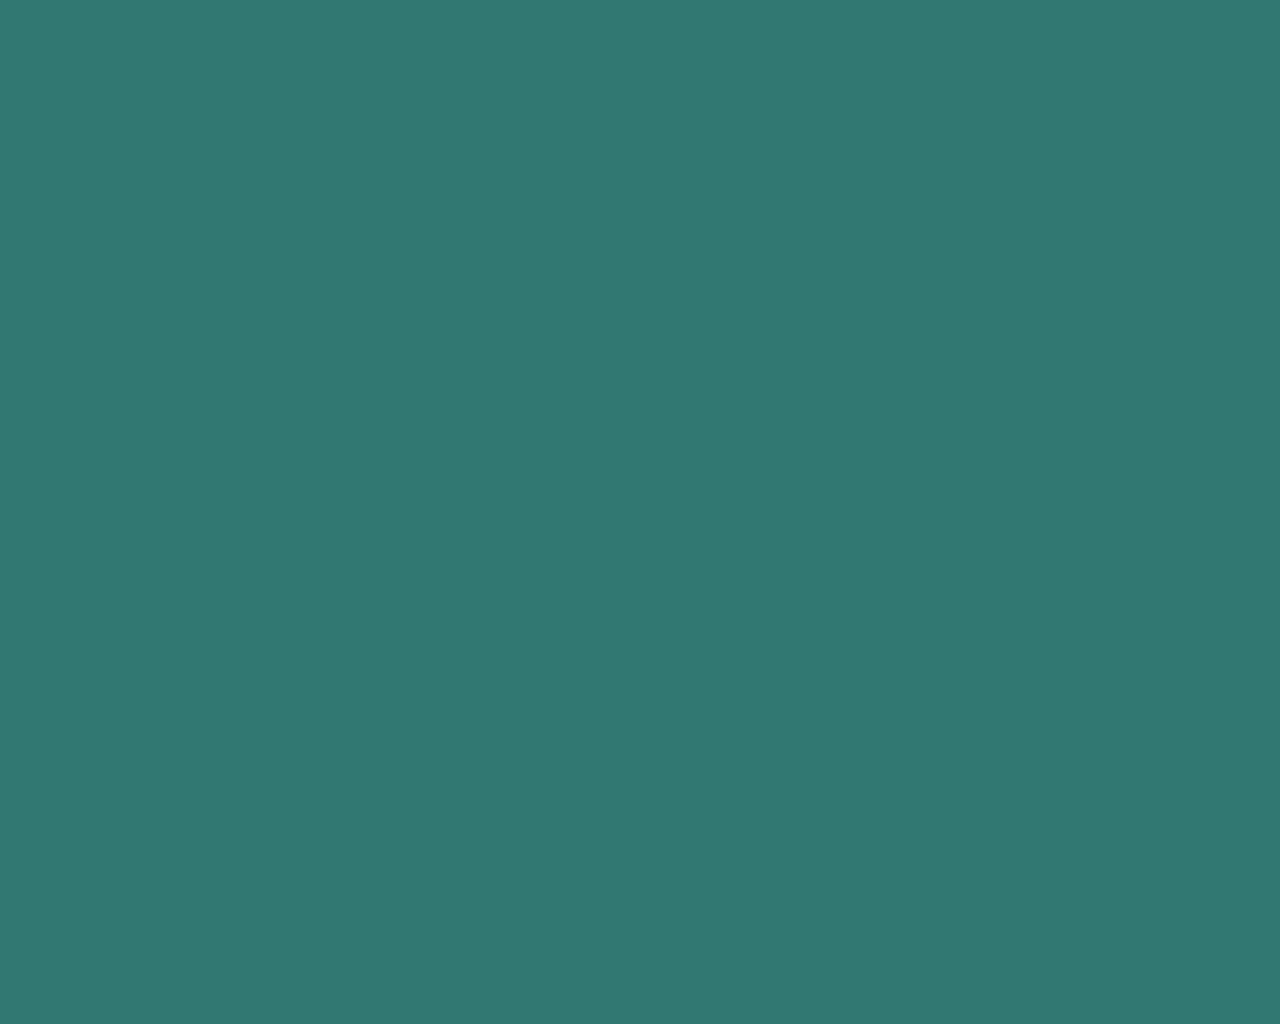 1280x1024 Myrtle Green Solid Color Background